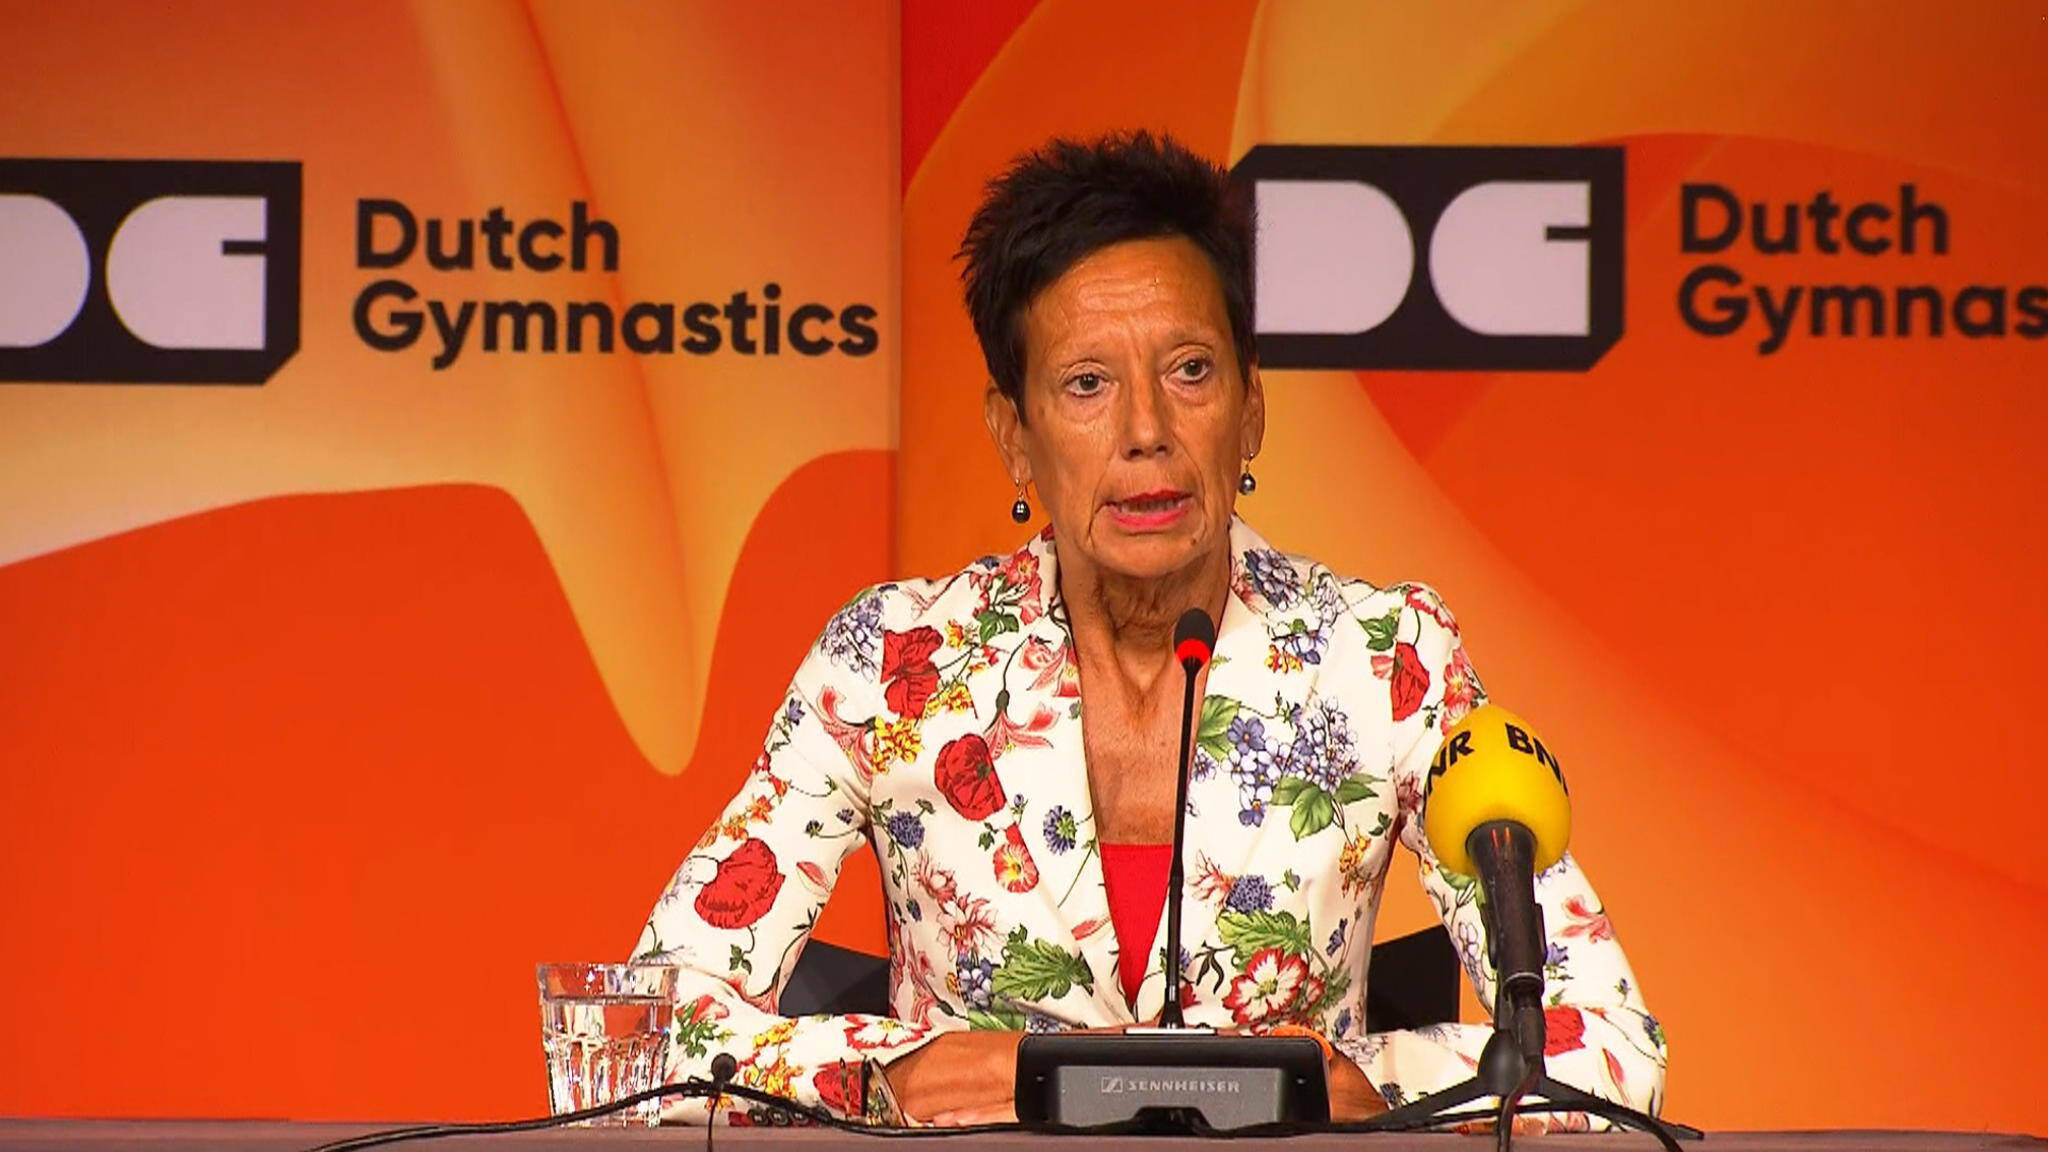 Royal Dutch Gymnastics Union President Monique Kempff promised a press action they would strong action following allegations of abuse in The Netherlands ©YouTube